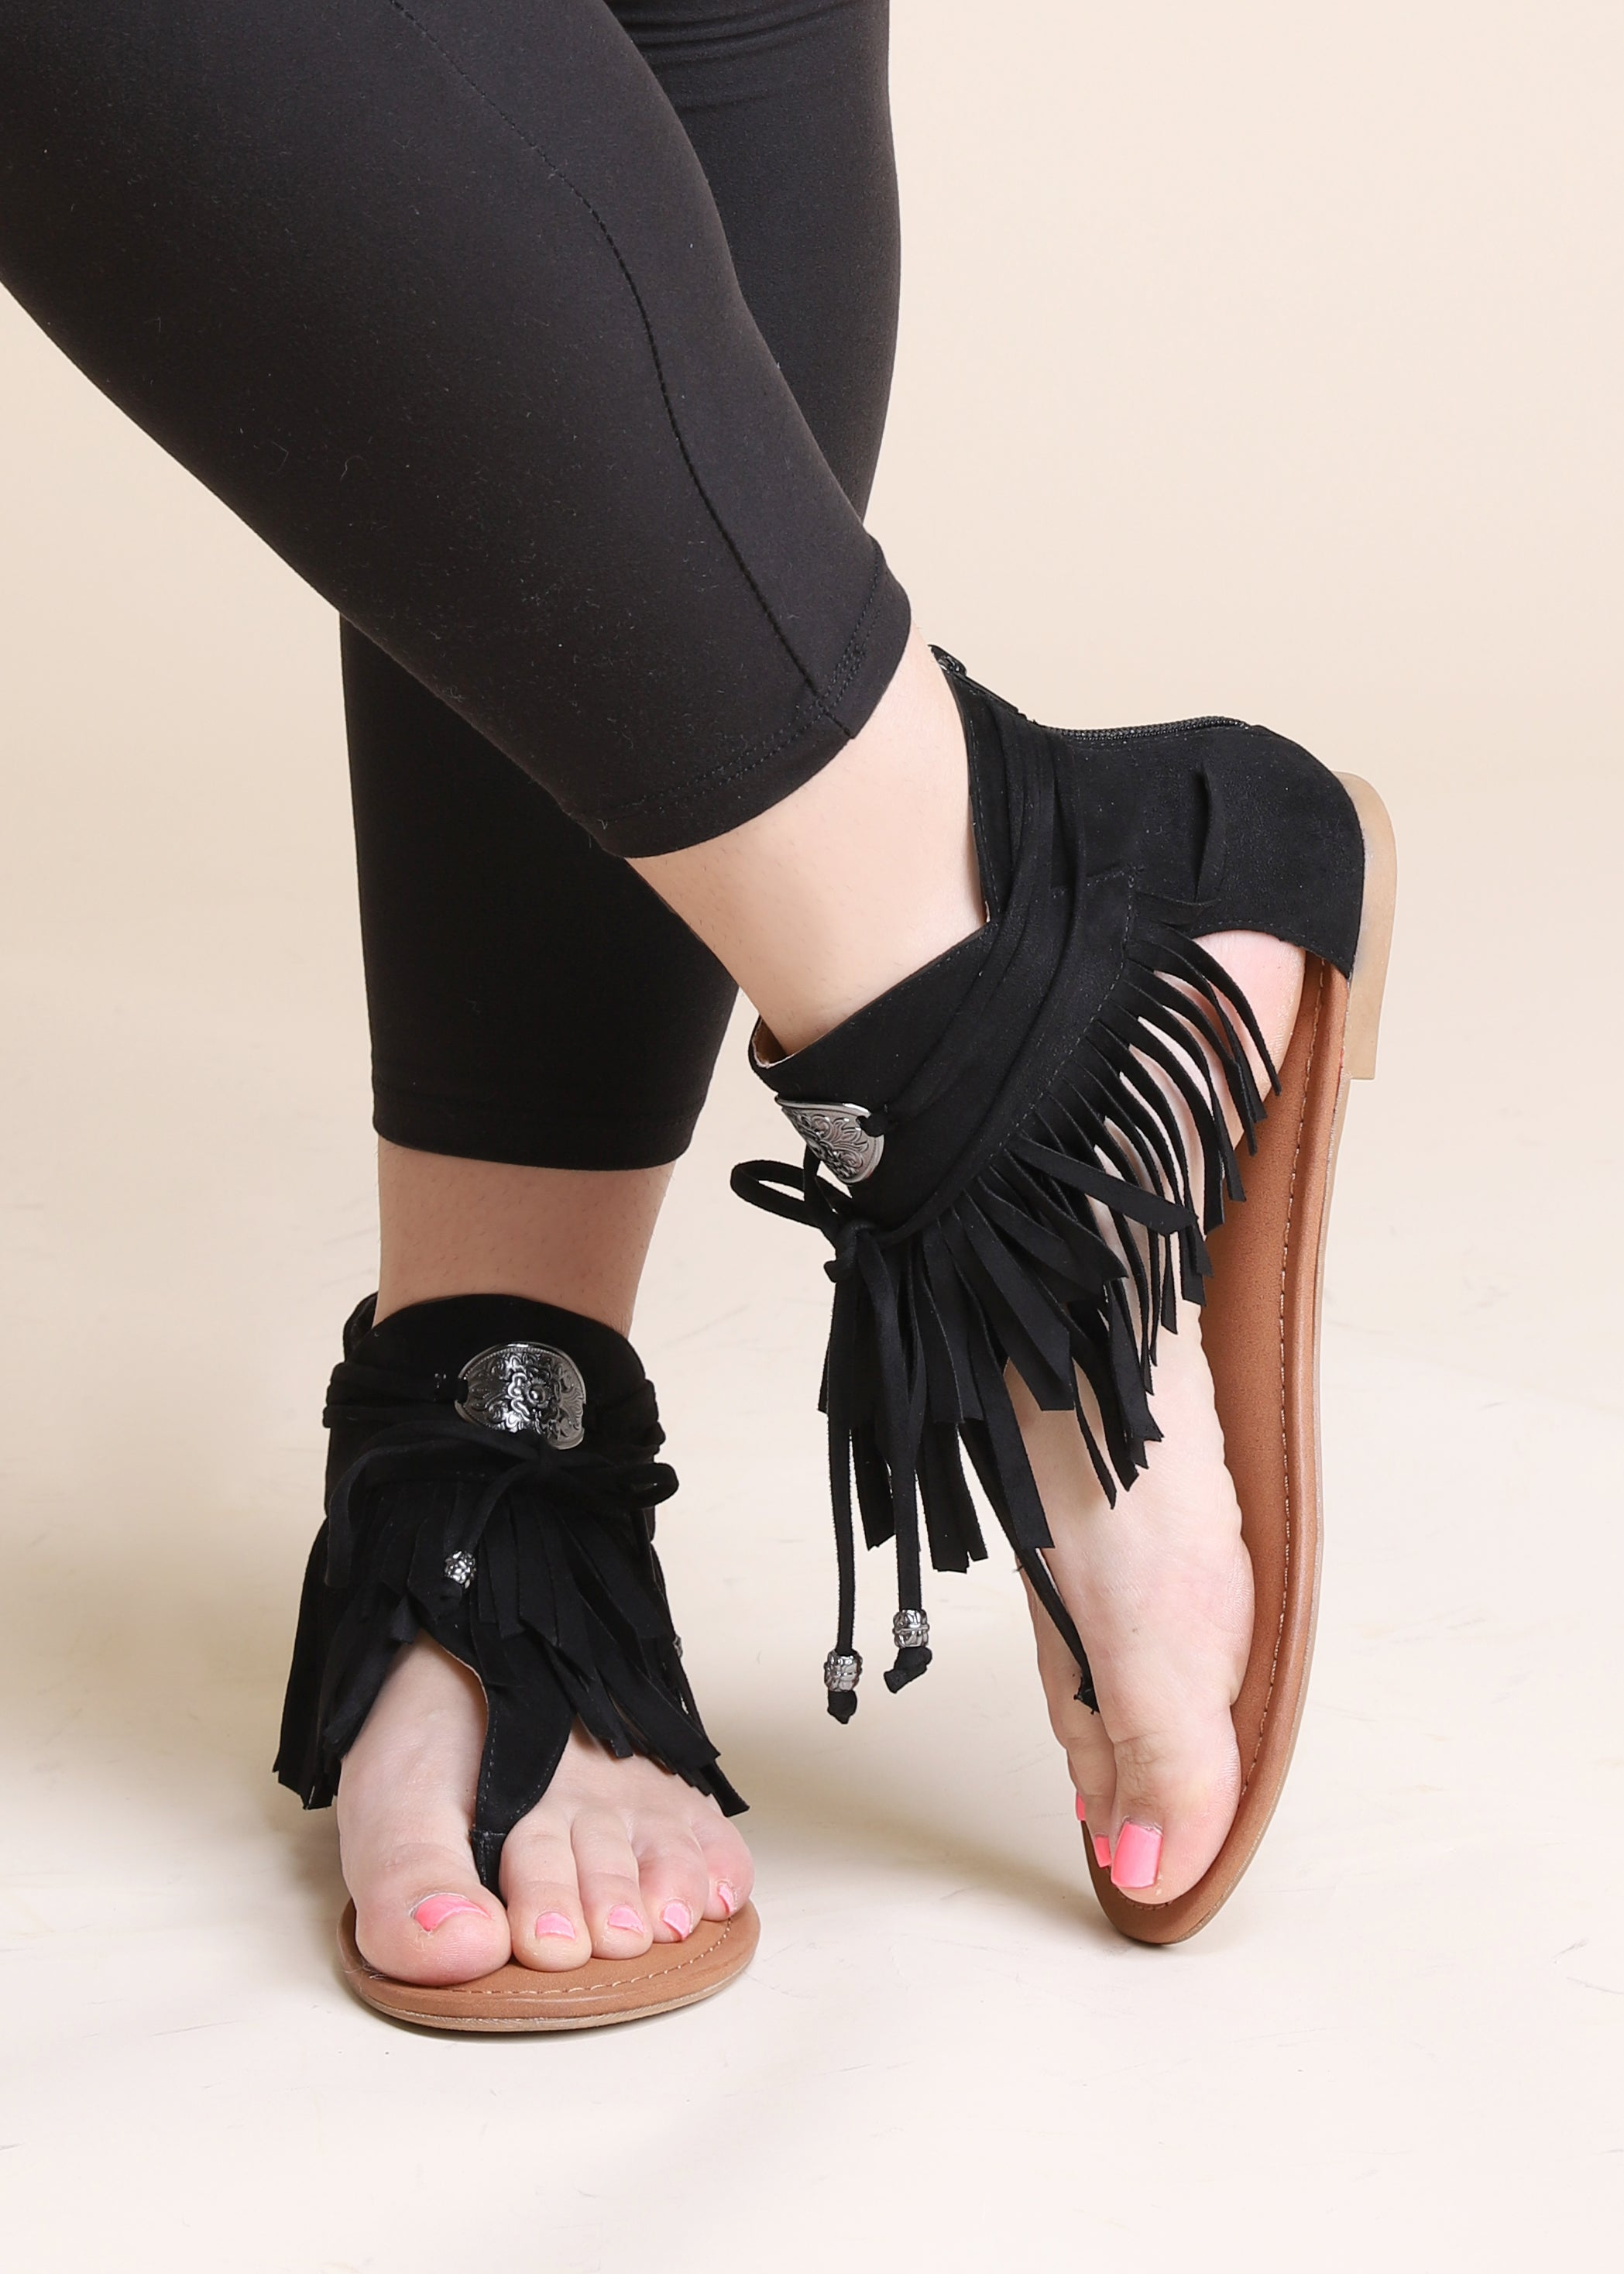 Chicos Fringe Sandal - FINAL SALE